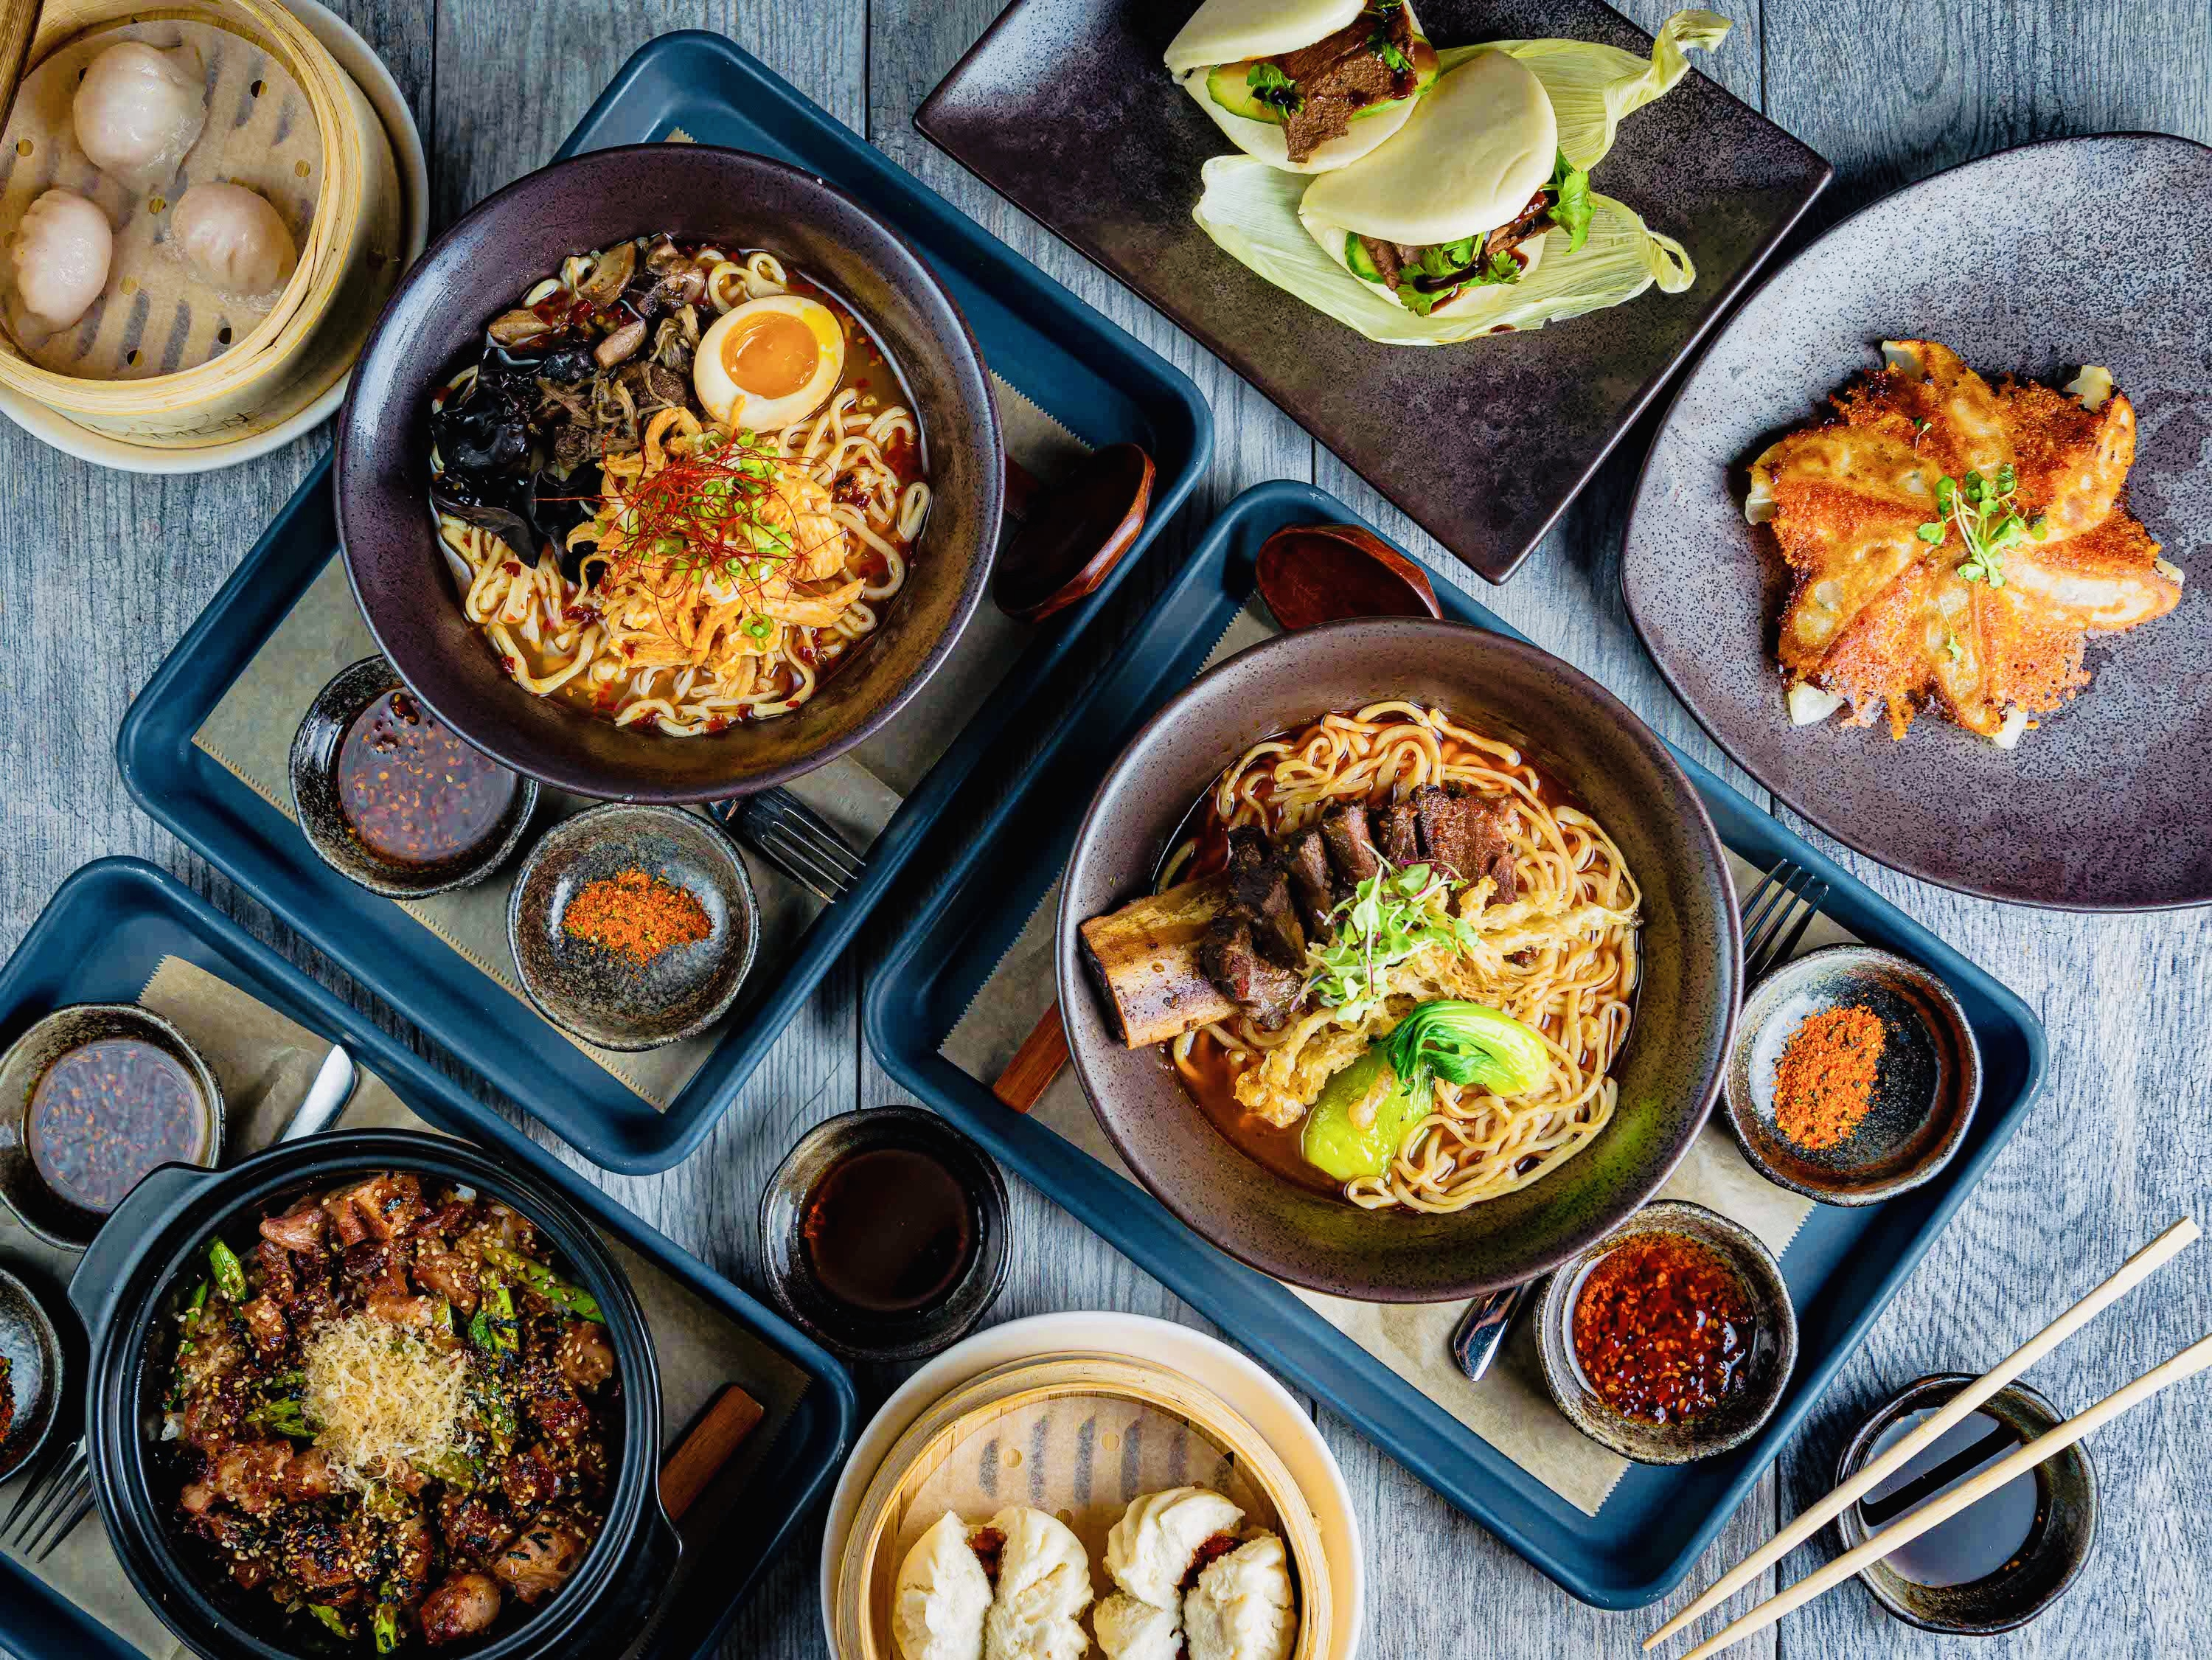 Upside view of In Ramen dishes